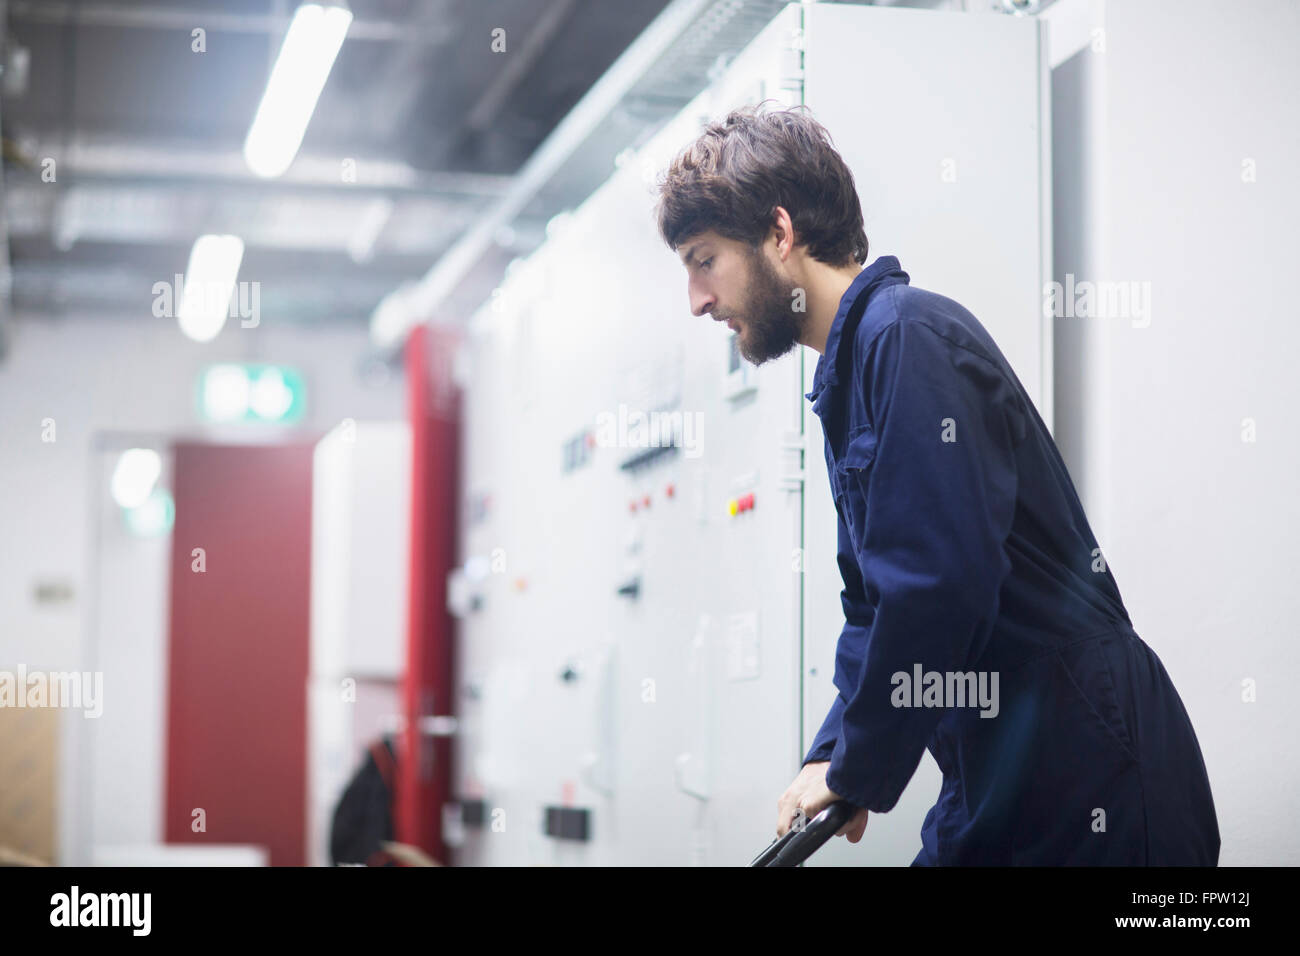 Young male engineer pushing cart in an industrial plant, Freiburg Im Breisgau, Baden-Württemberg, Germany - Stock Image